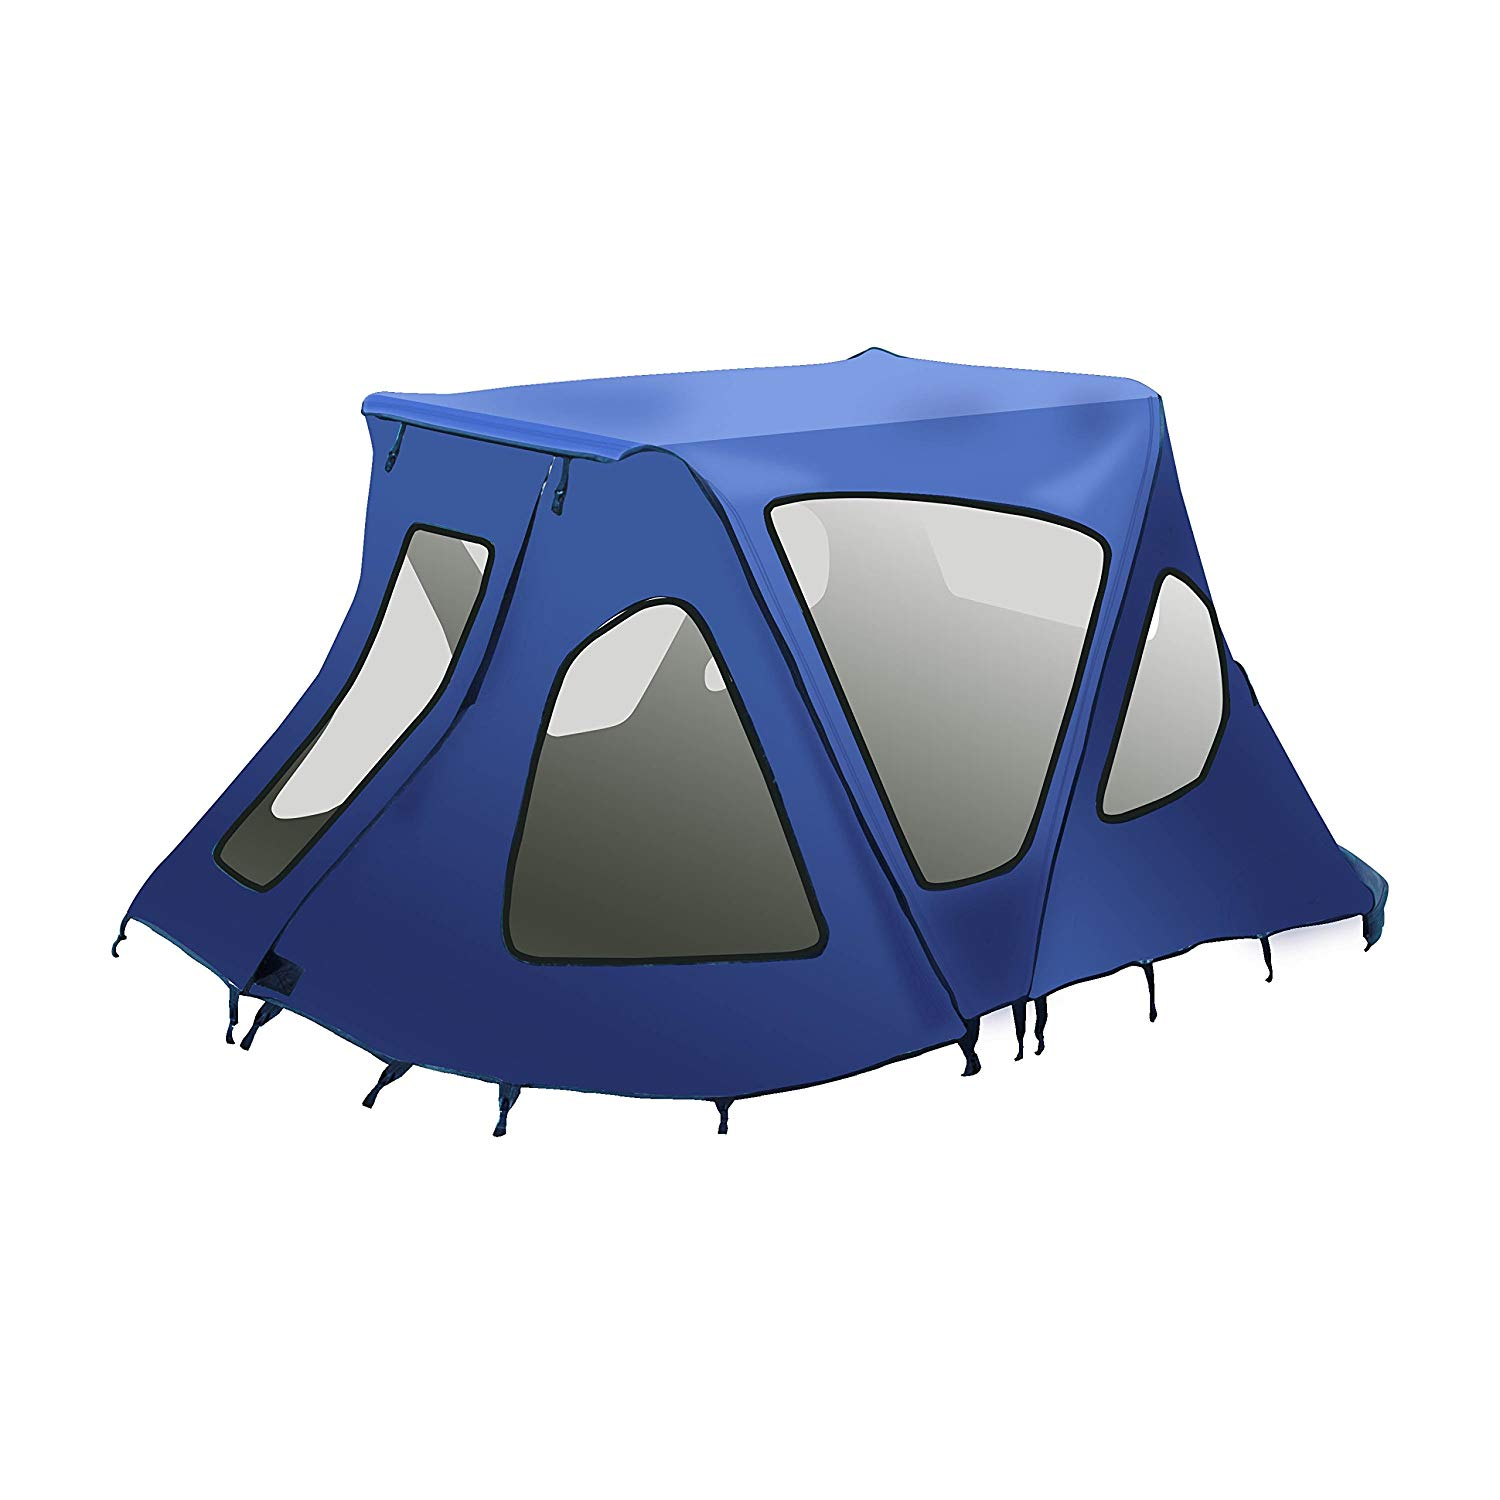 BWTENT380B Winter Canopy Boat Tent Sun Shelter Sunshade for Inflatable Boats 6 x